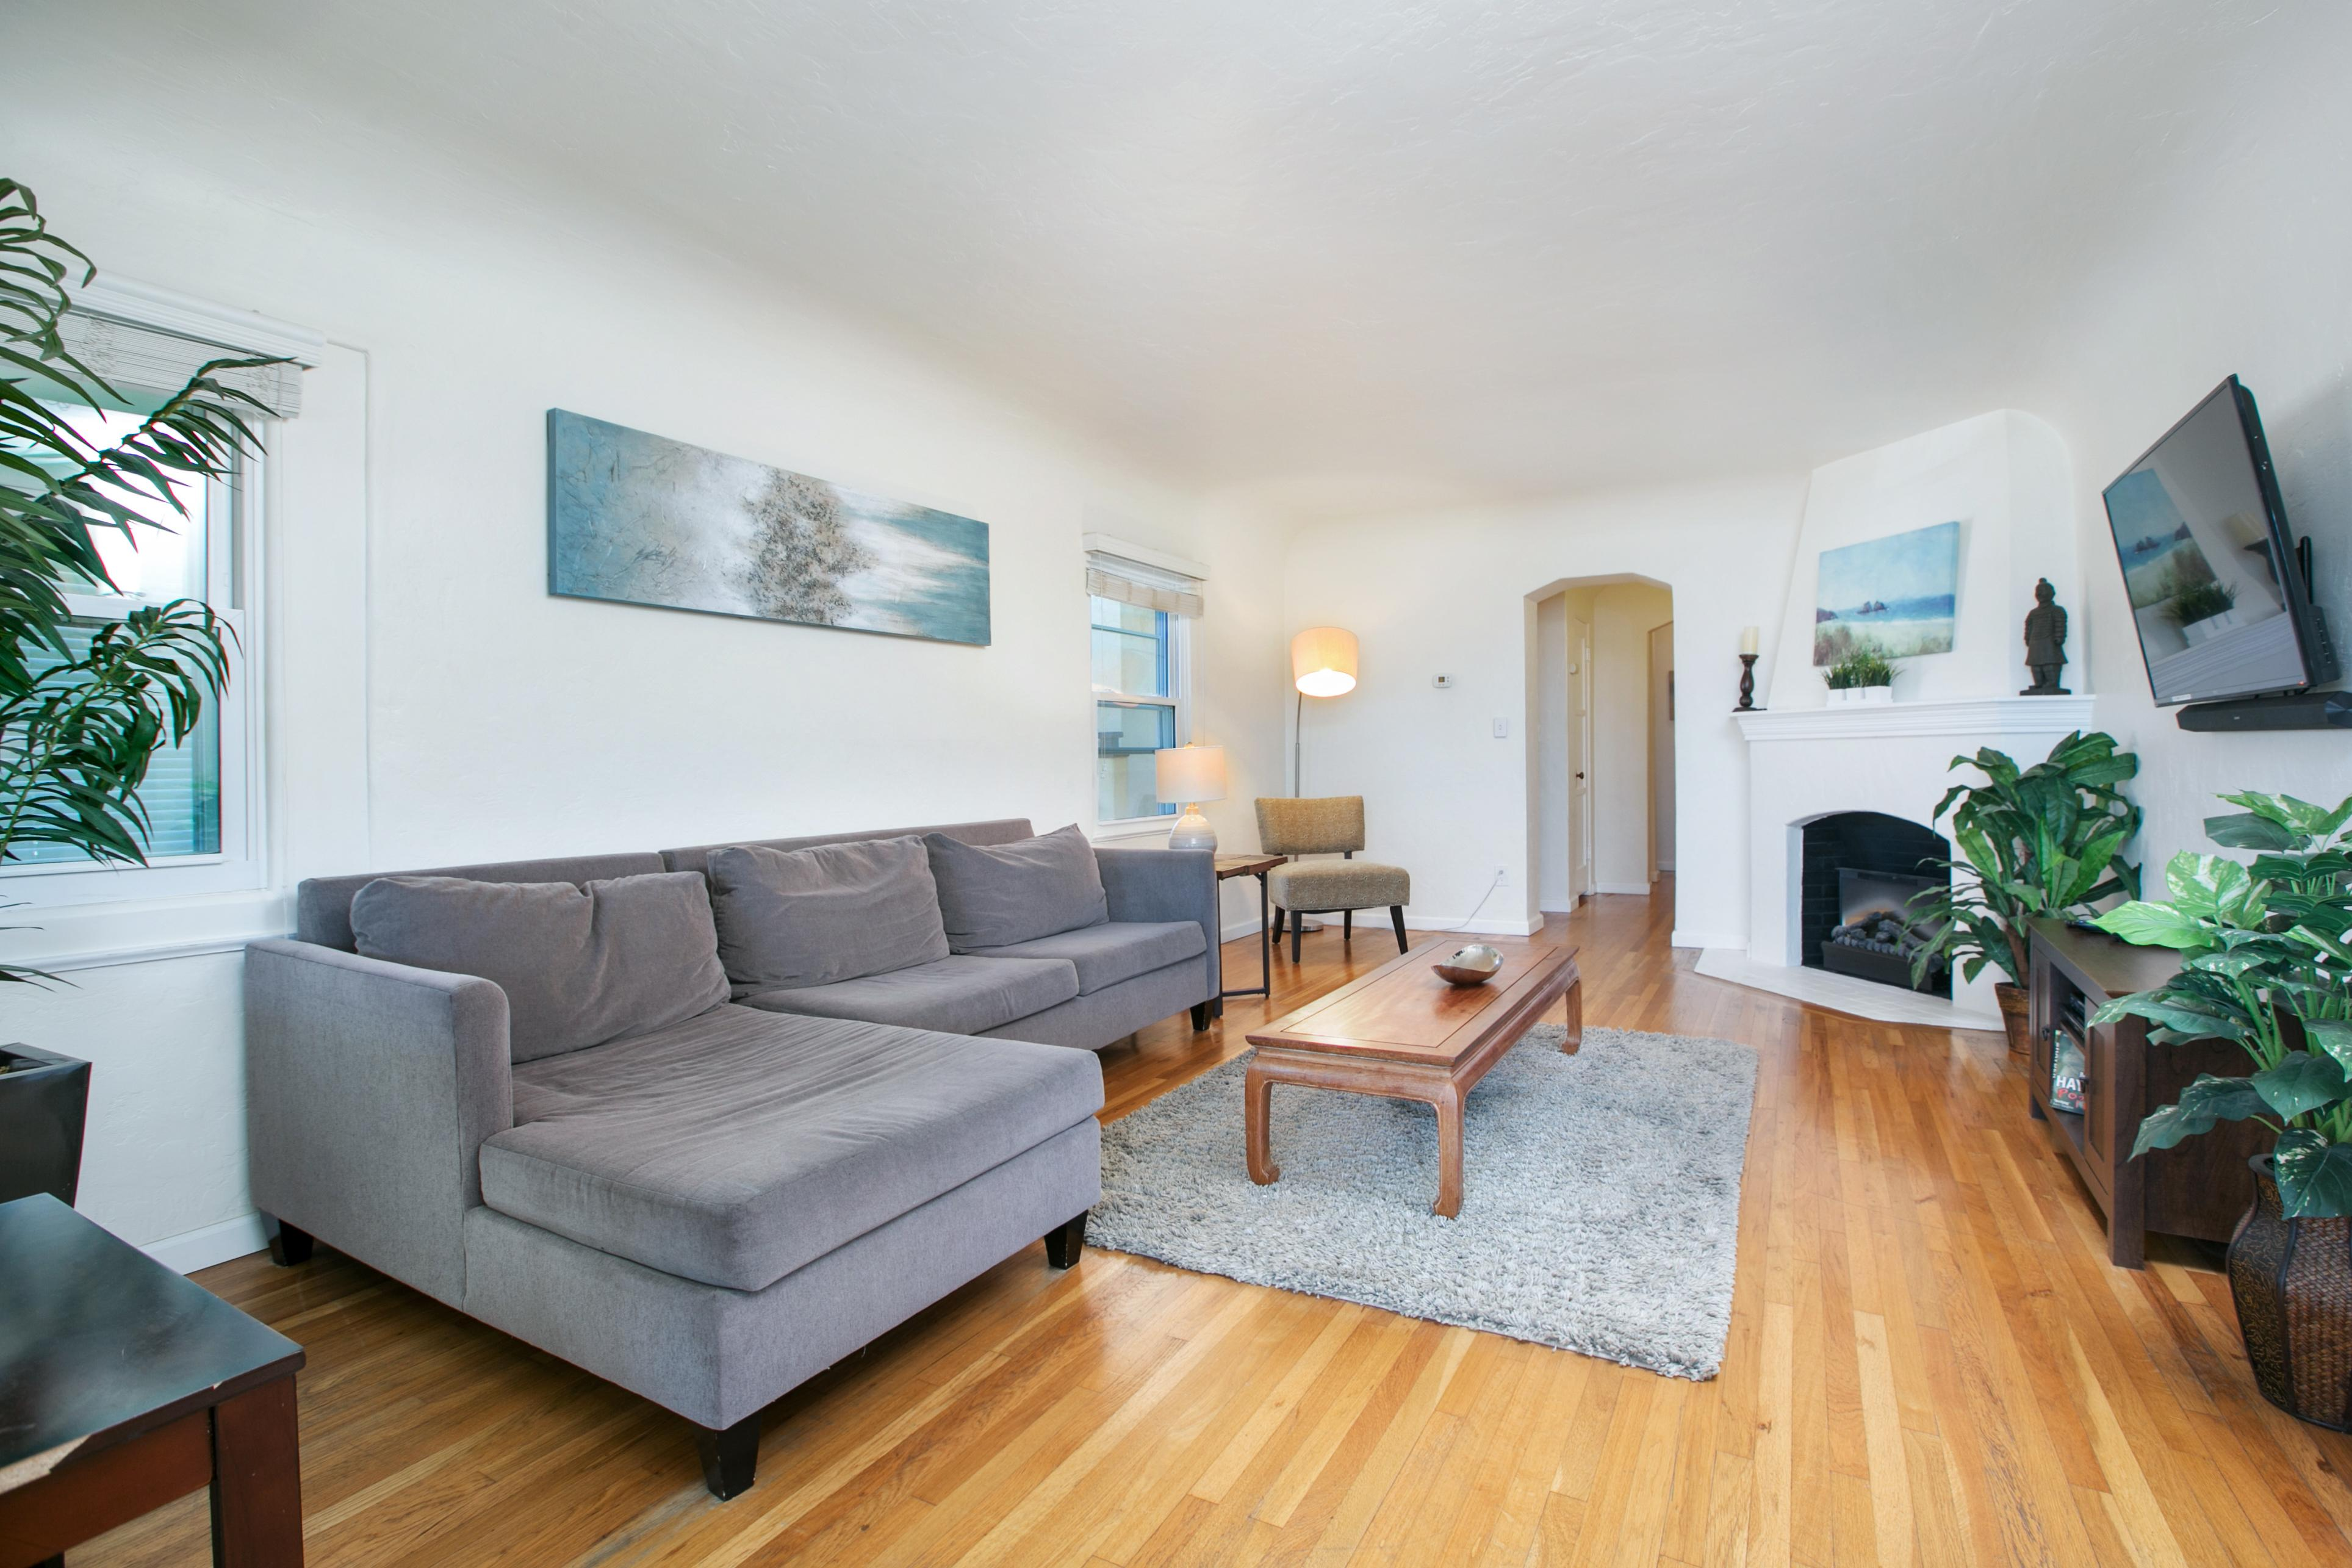 Two Bedroom Home in Mission Hills 1015